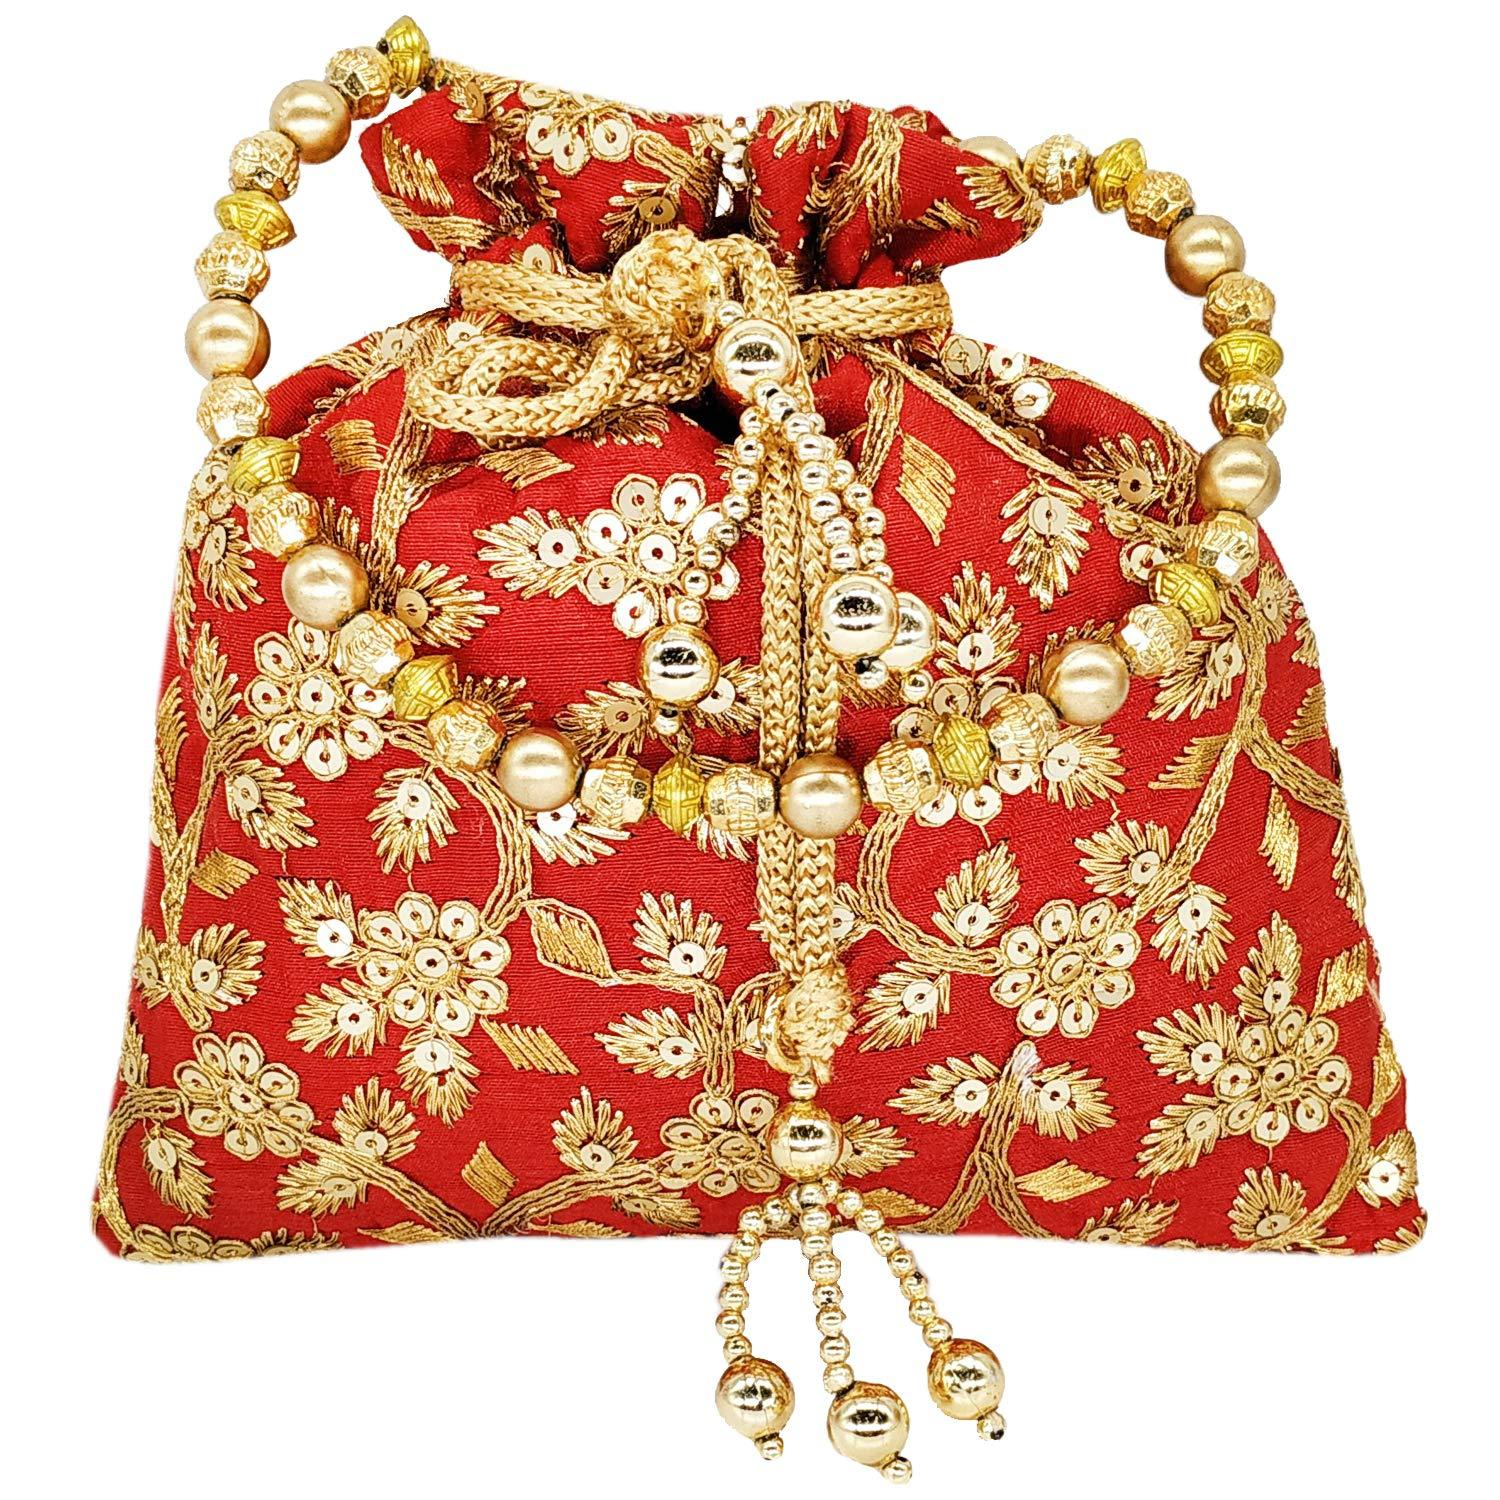 Sequin and Embroidery work Potli Batwa - Bagaholics Gift